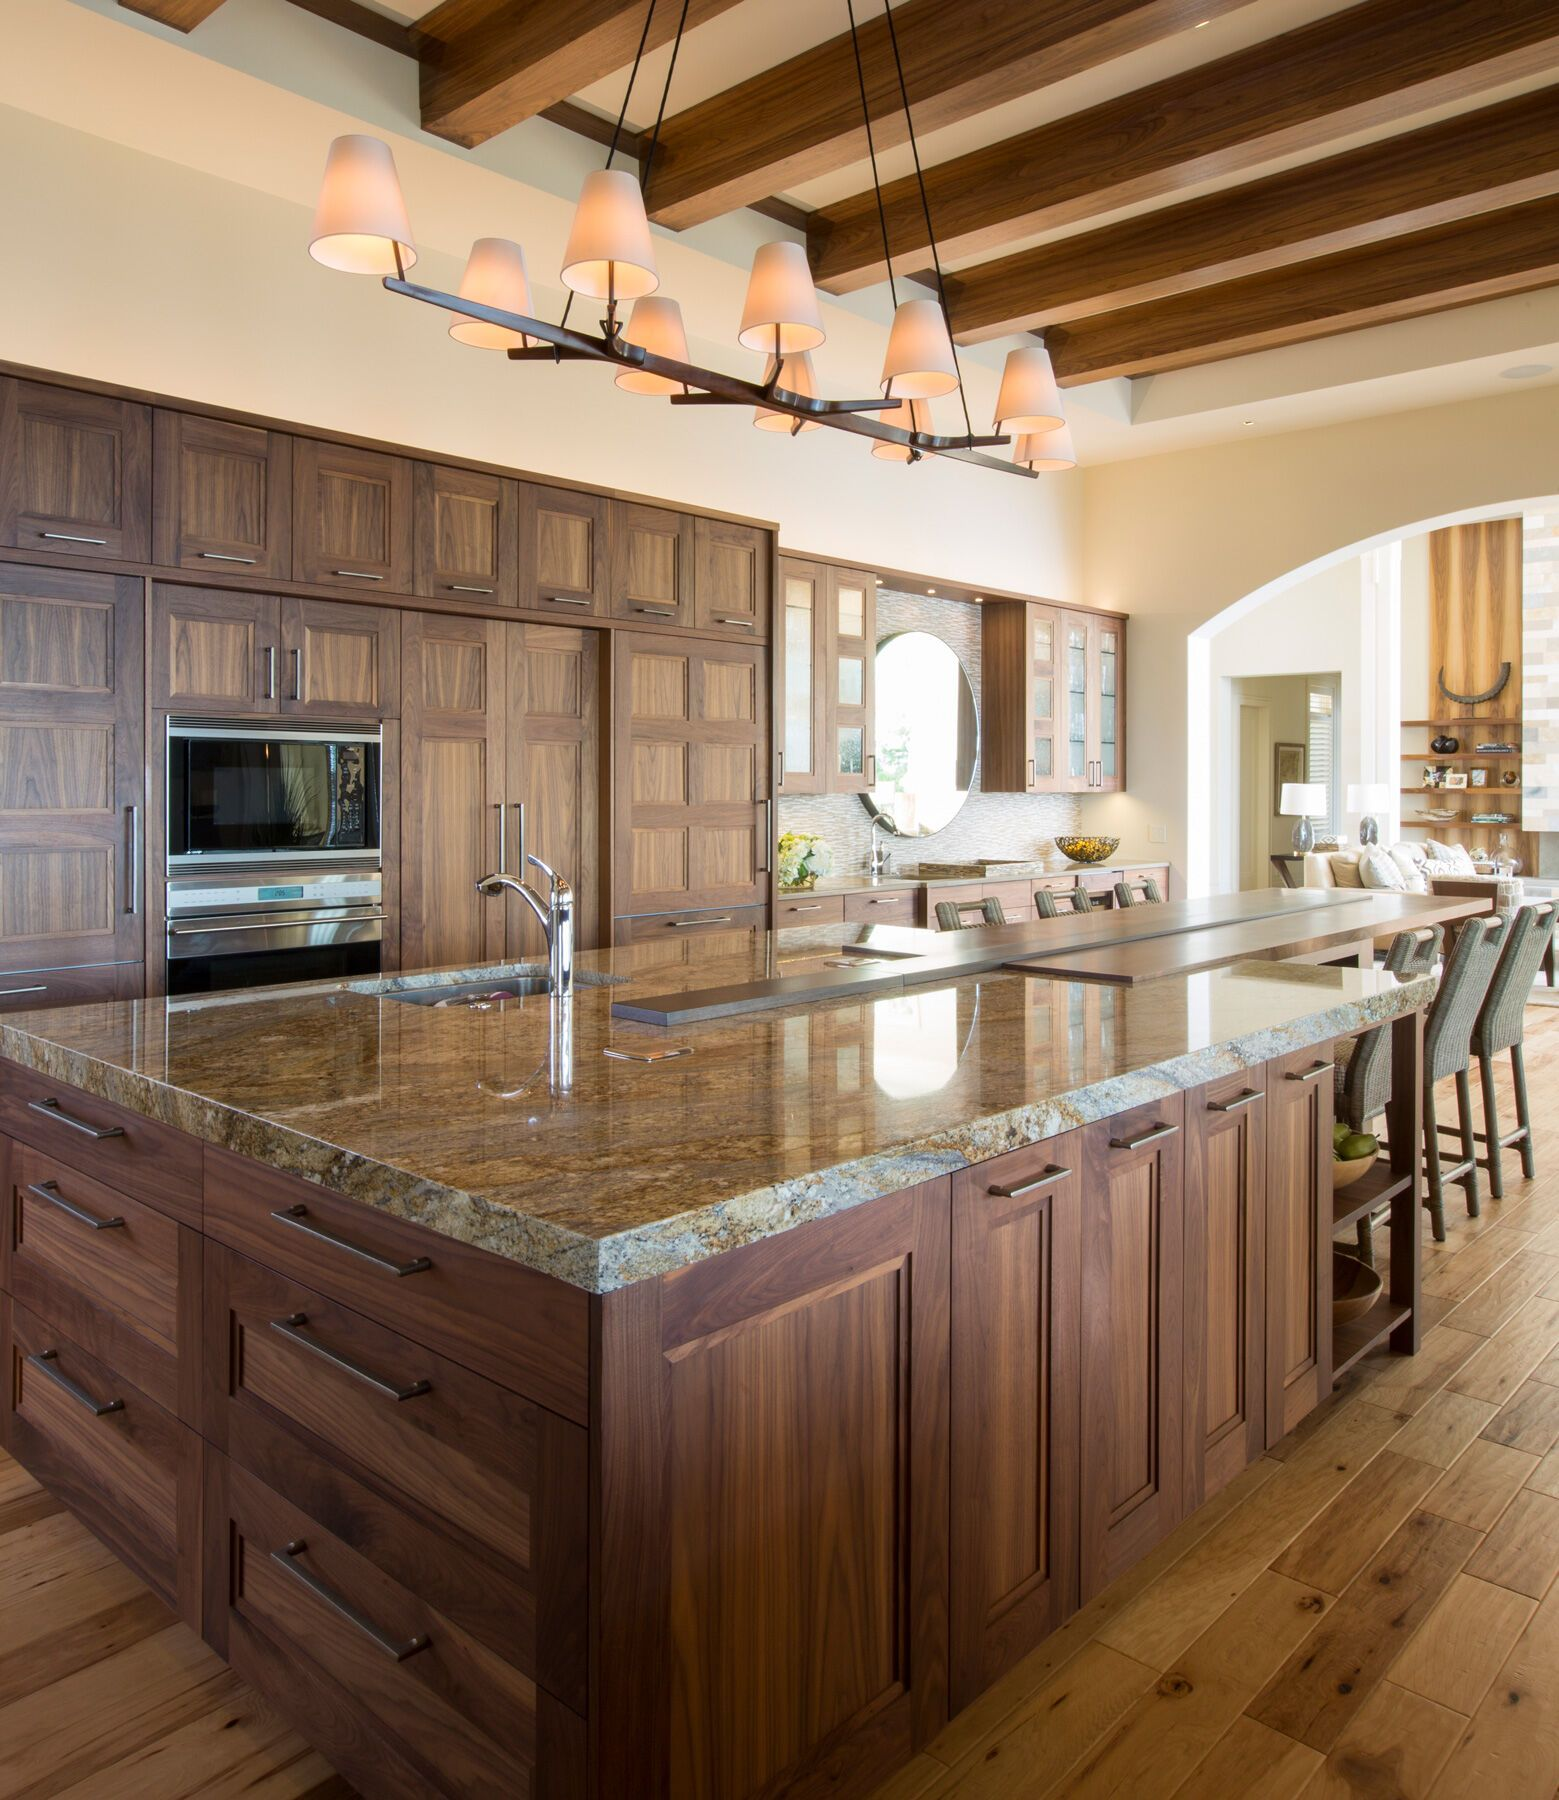 Best Value American Made Kitchen Cabinets Crafted With Care For